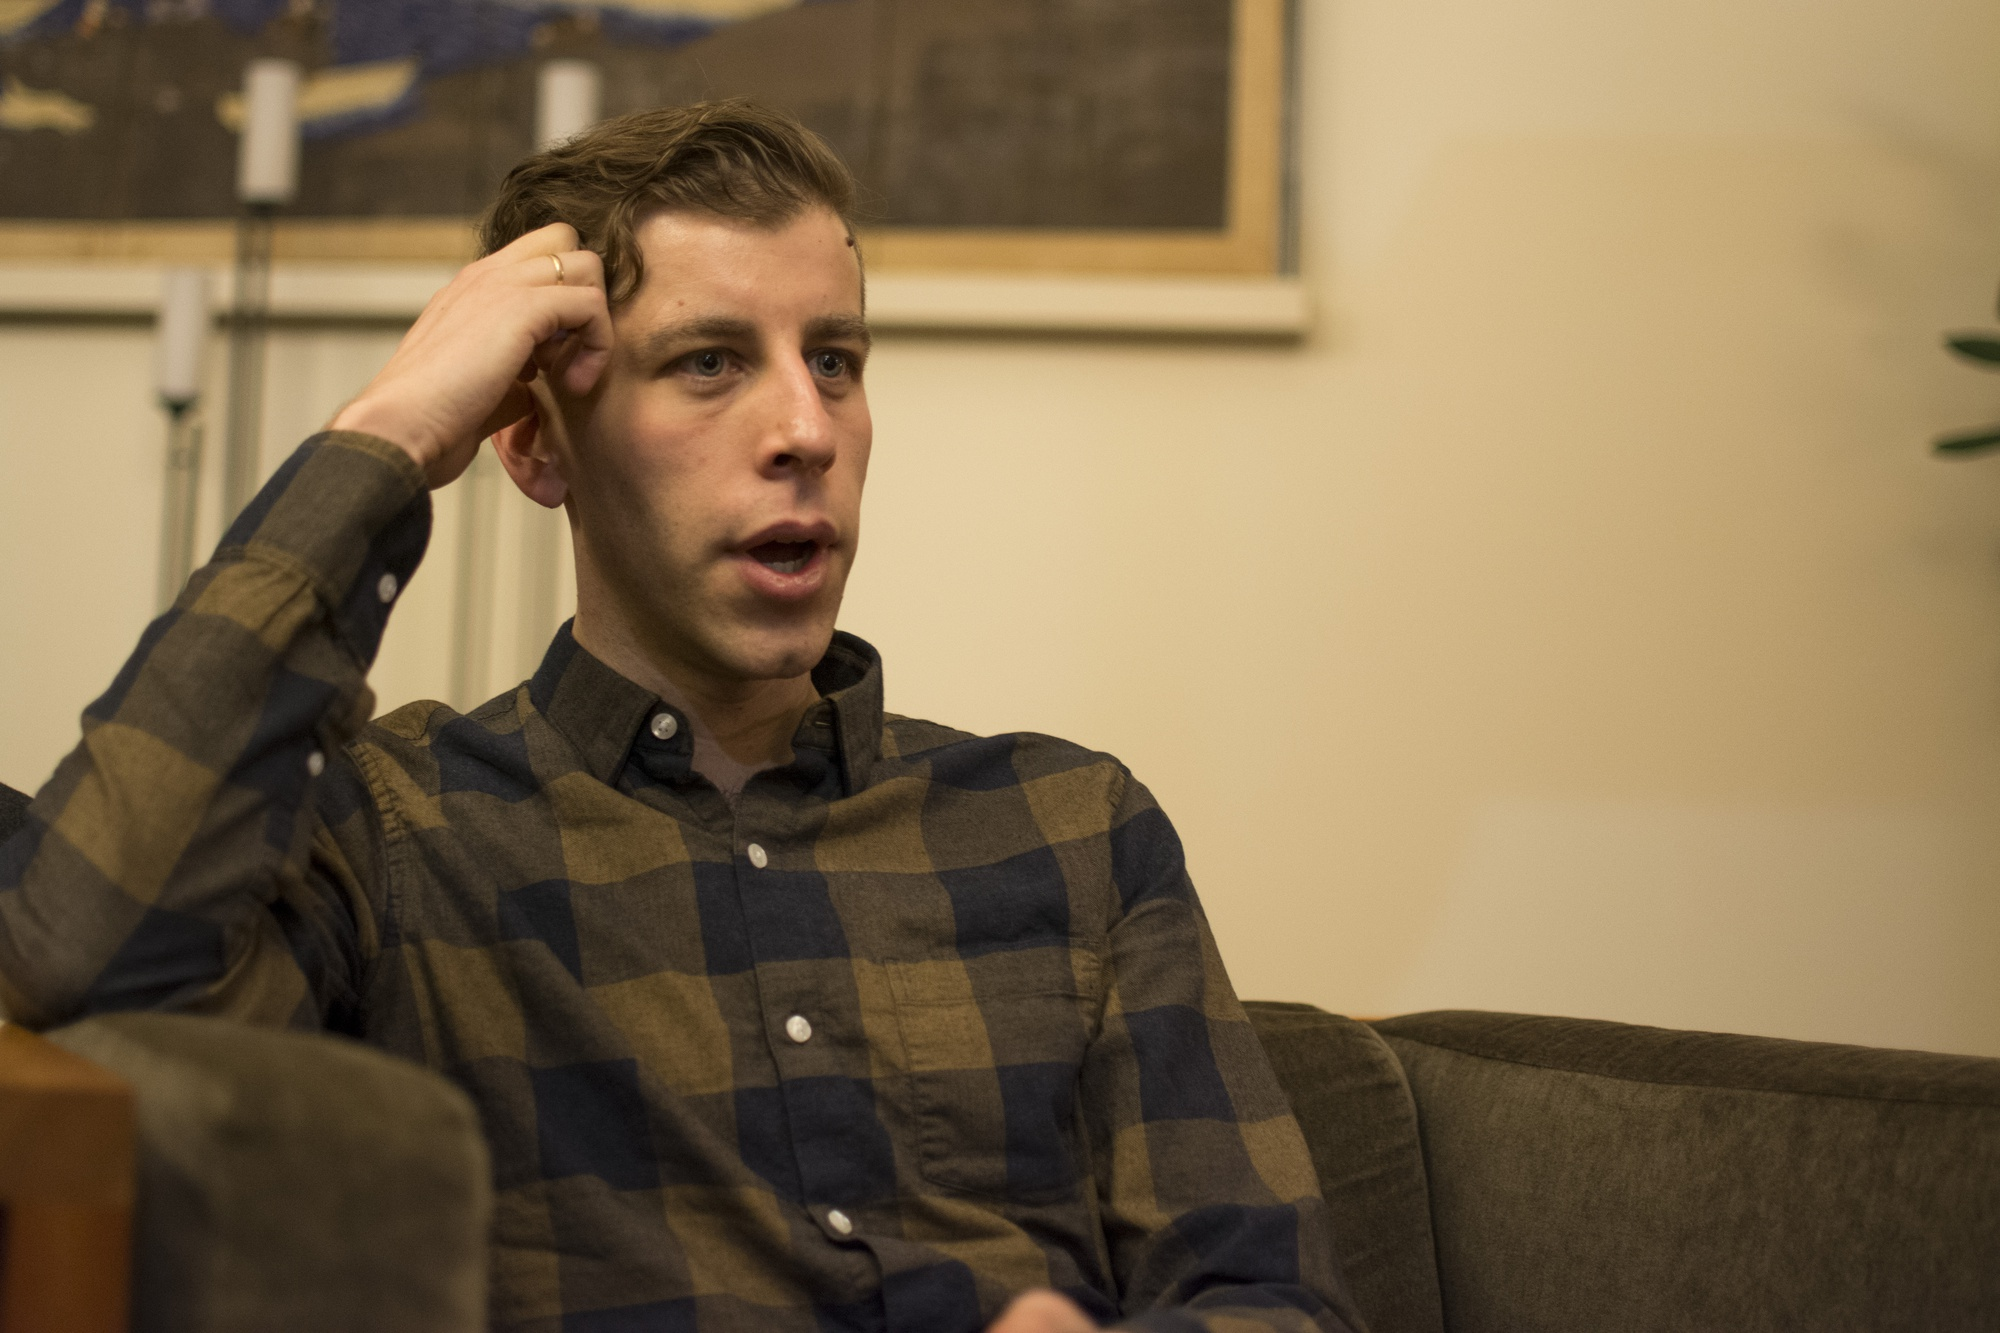 """David Jud is a resident tutor at Mather House. Together with Harvard chaplain Adam L. Dyer, he founded """"The Masc"""", the first organization on campus created to discuss and address questions about masculinity."""